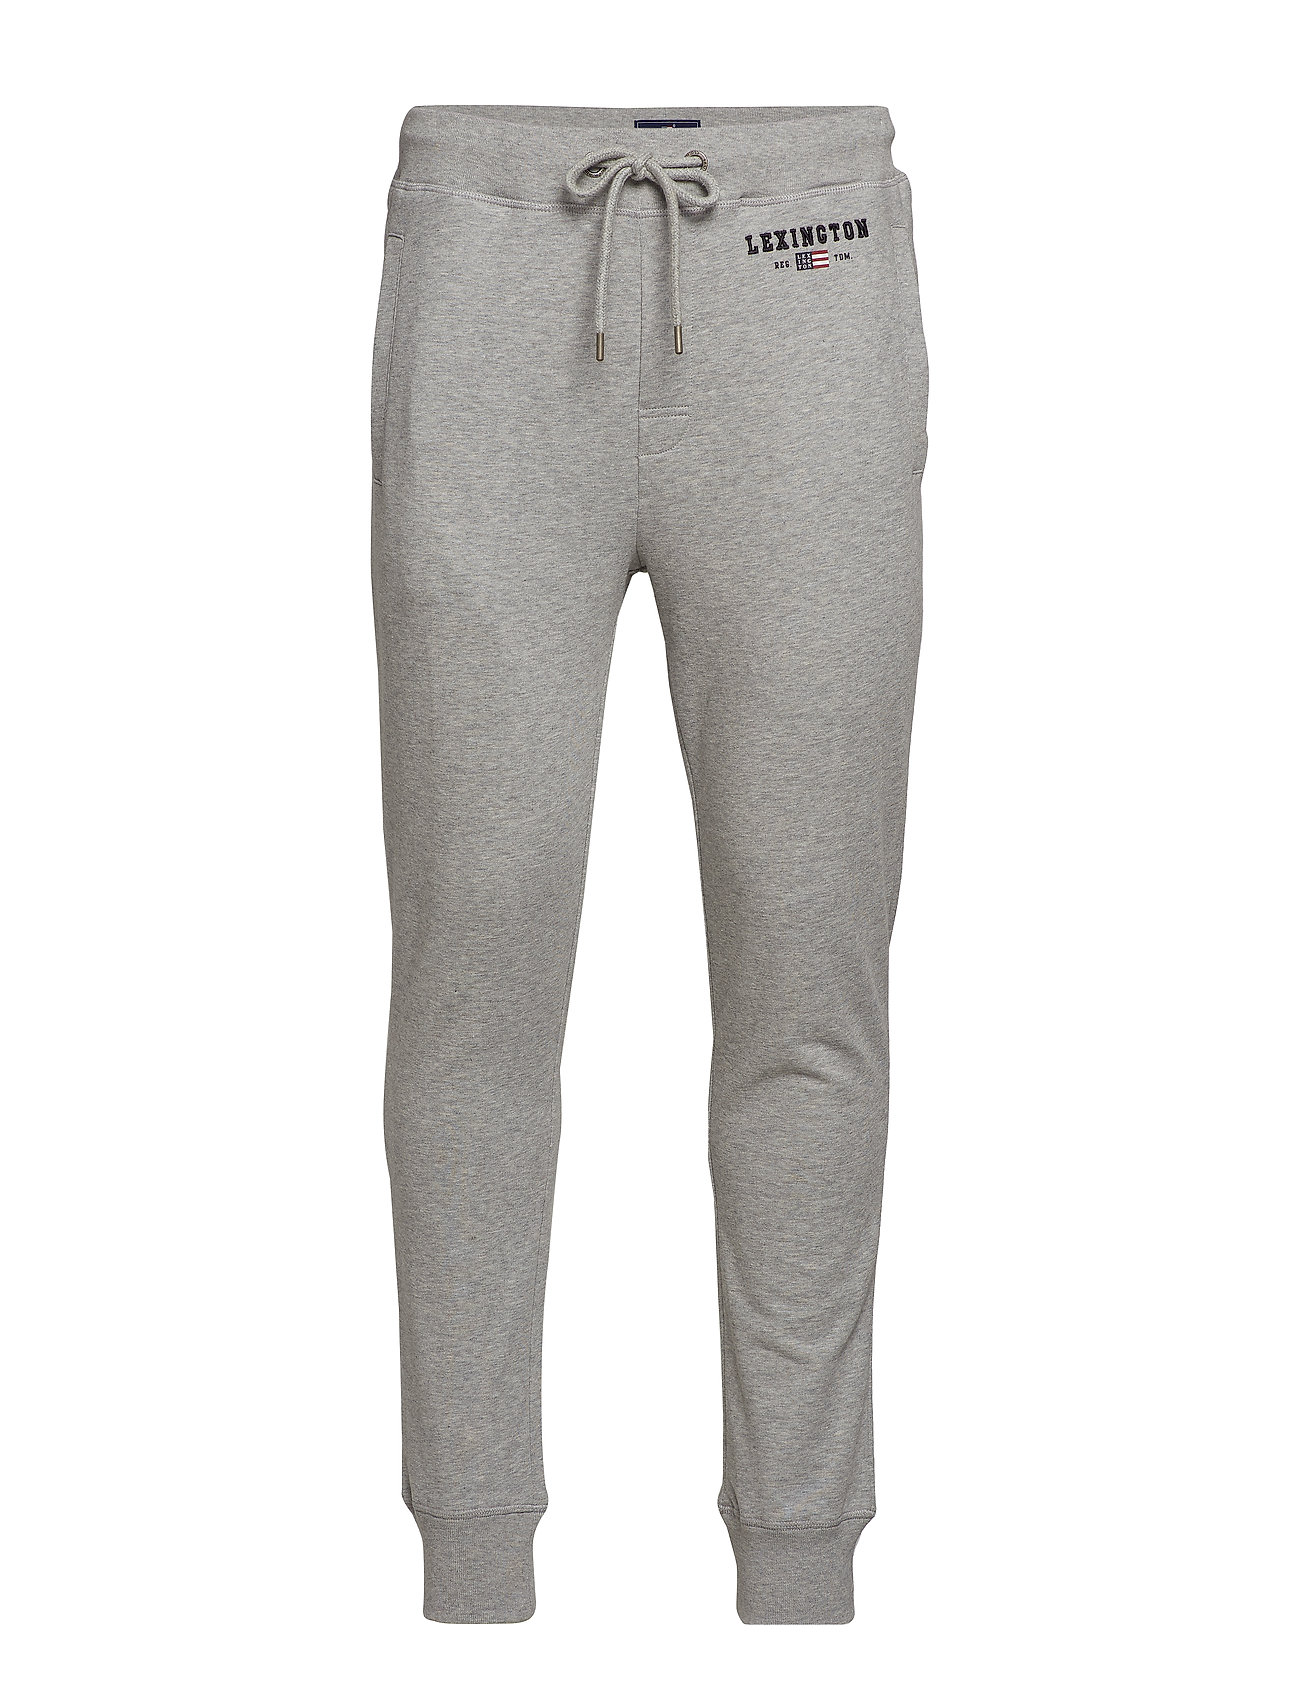 Lexington Clothing Ivan Track Pants - GRAY MELANGE